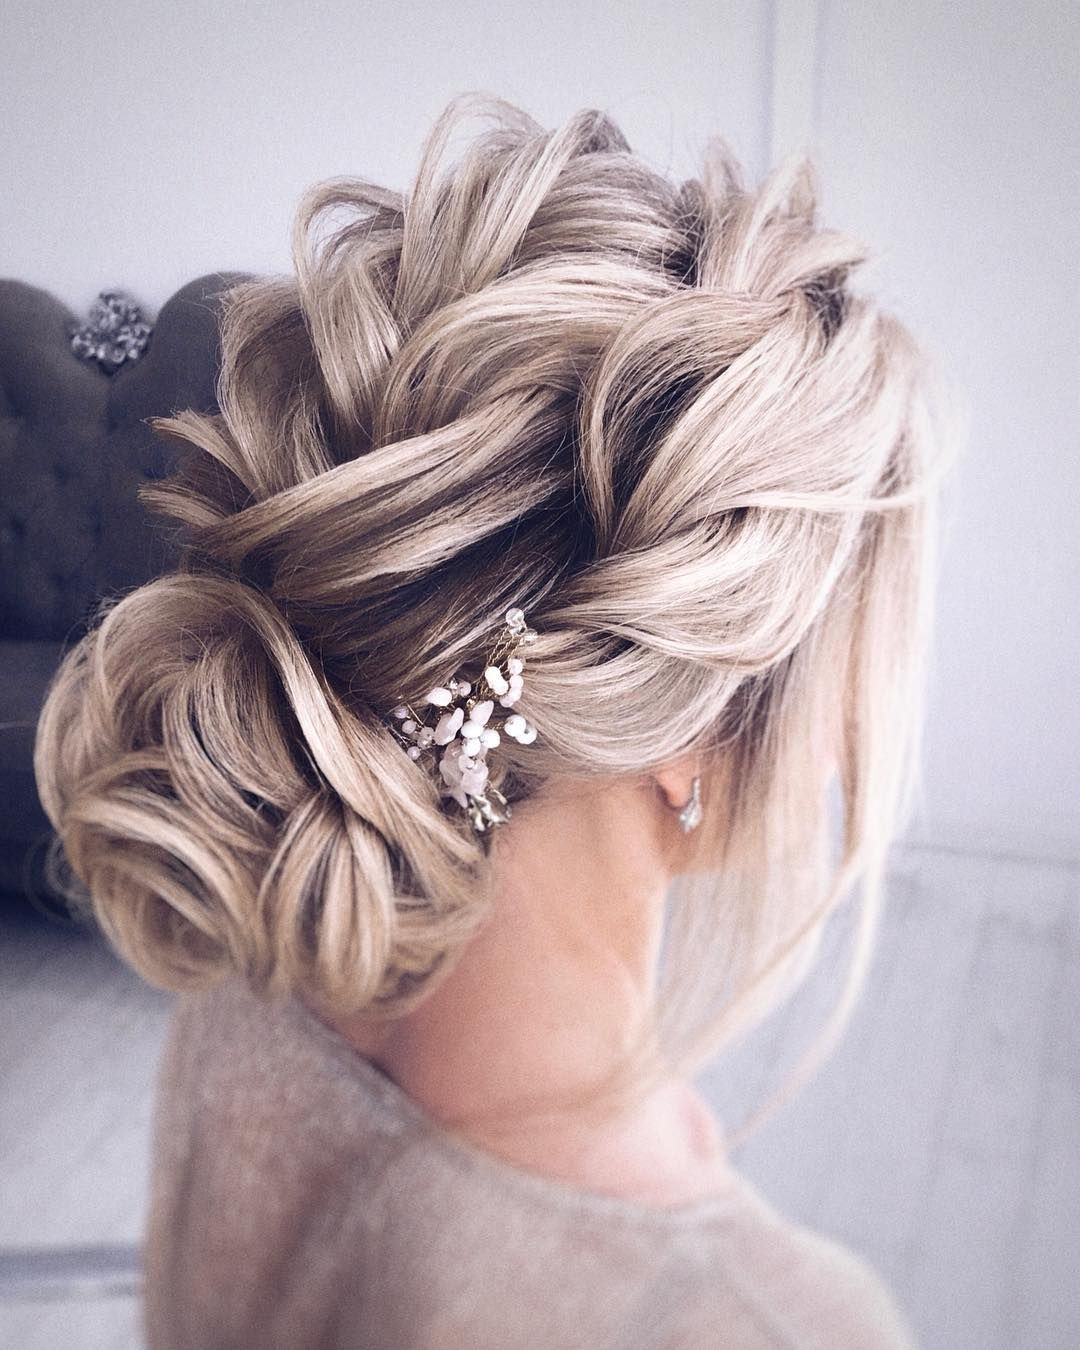 Wedding Hair Color Ideas: 100 Gorgeous Wedding Hair From Ceremony To Reception